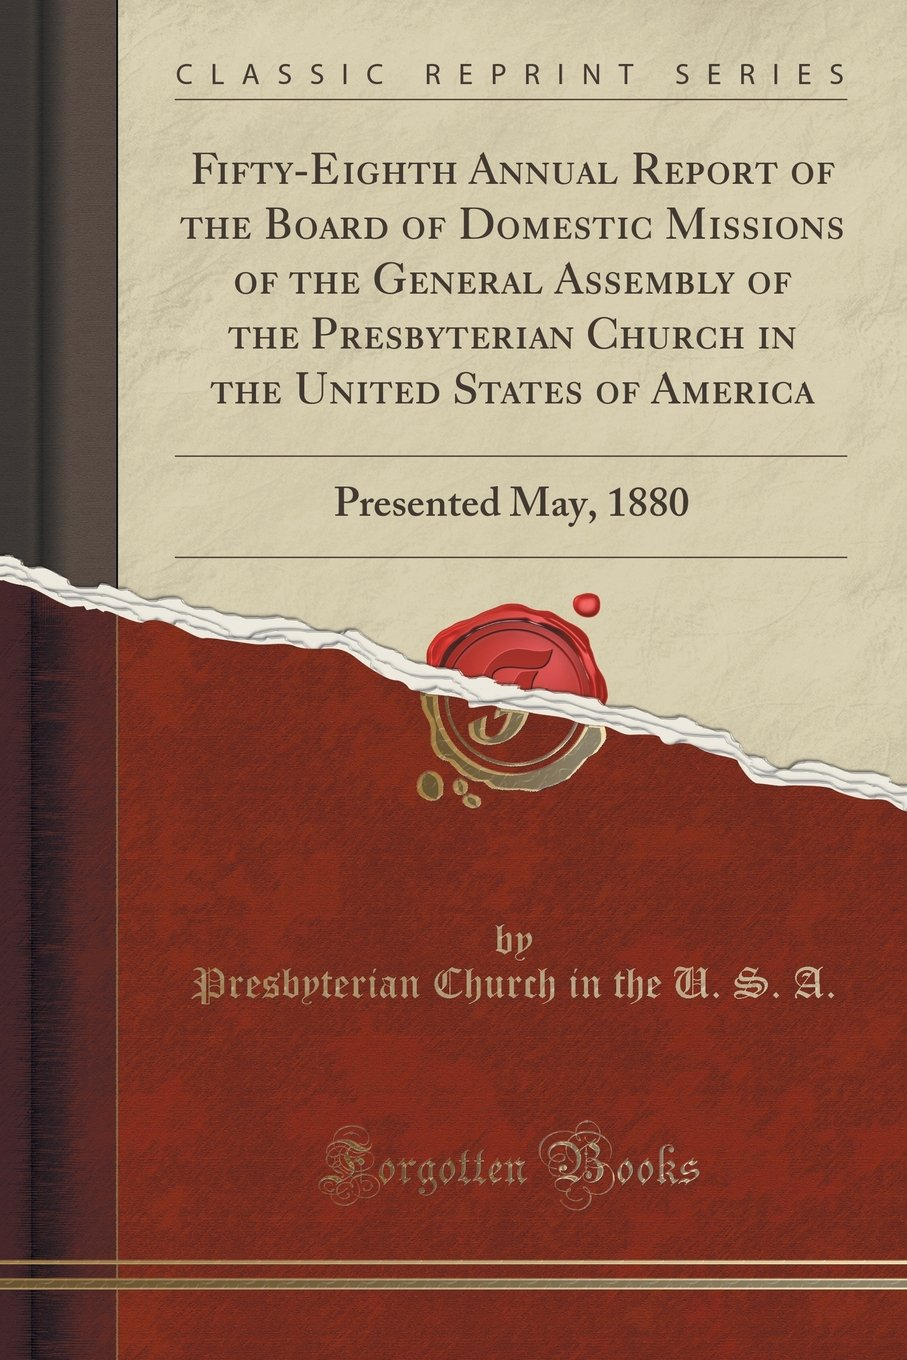 Fifty-Eighth Annual Report of the Board of Domestic Missions of the General Assembly of the Presbyterian Church in the United States of America: Presented May, 1880 (Classic Reprint) pdf